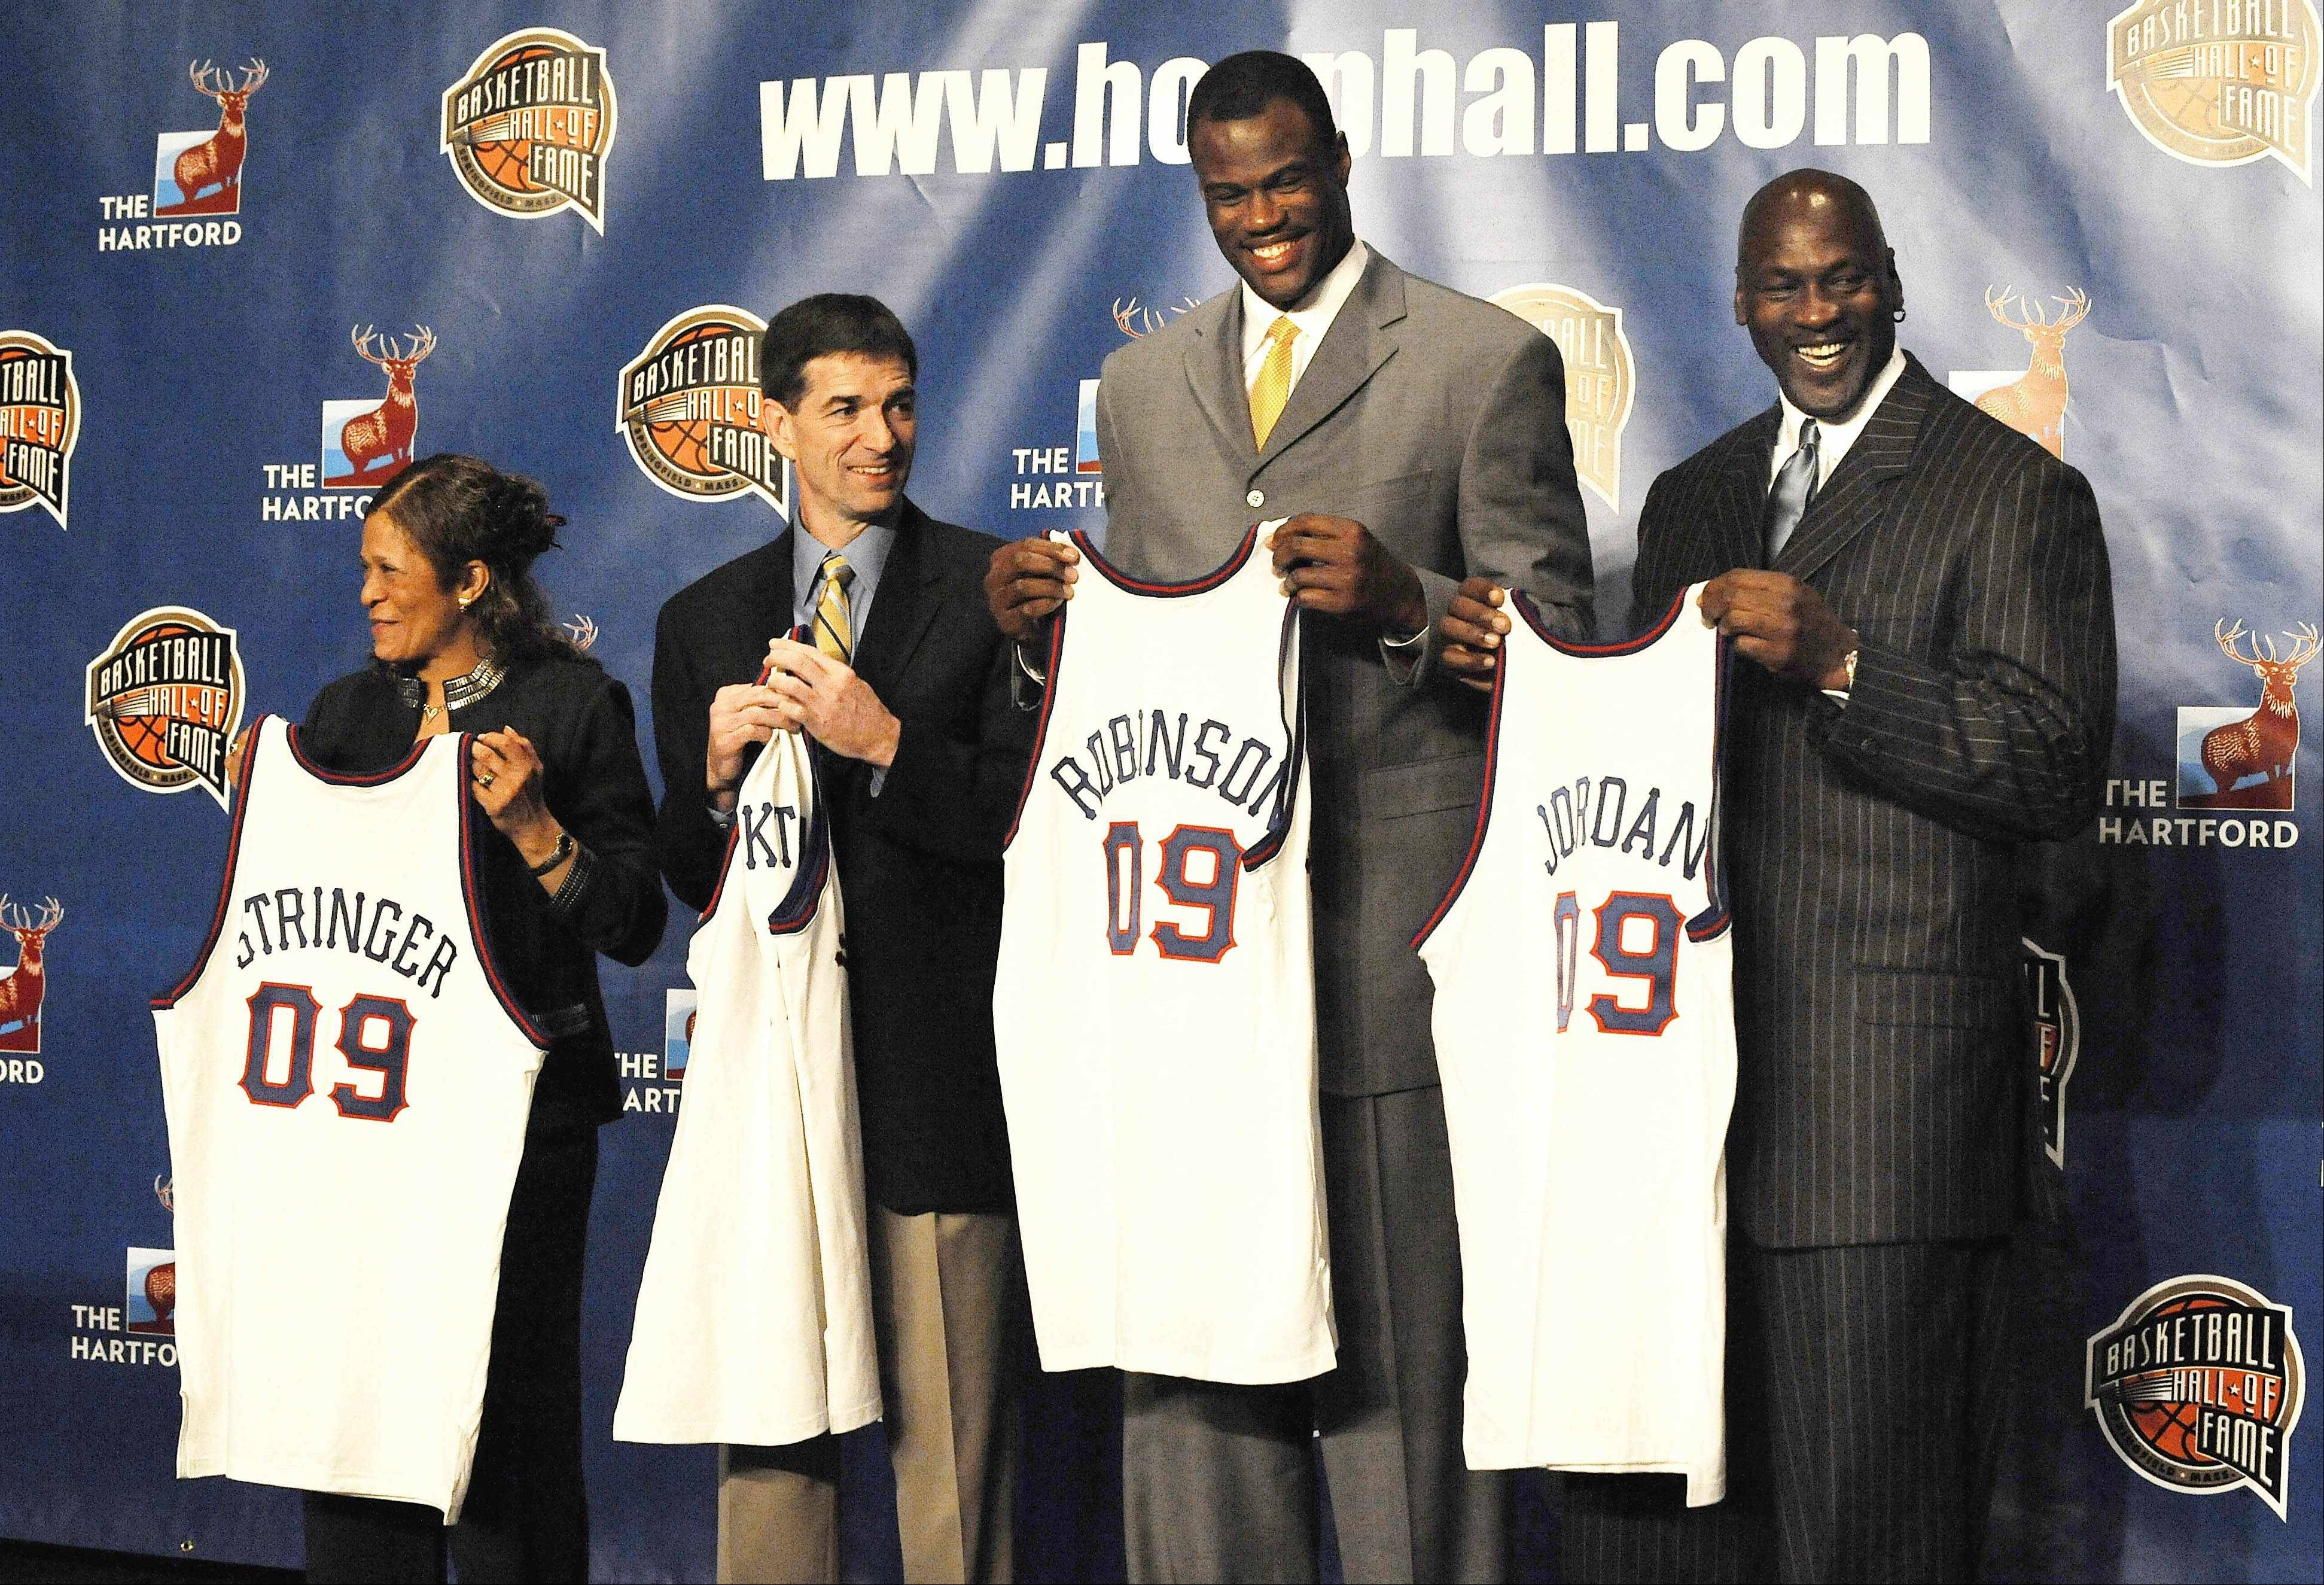 From left, Rutgers women's coach C. Vivian Stringer, and former NBA basketball players John Stockton, David Robinson and Michael Jordan hold jerseys Monday, April 6, 2009, in Detroit, at the announcement that they were elected to the Basketball Hall of Fame. Utah Jazz coach Jerry Sloan is also part of the 2009 class.